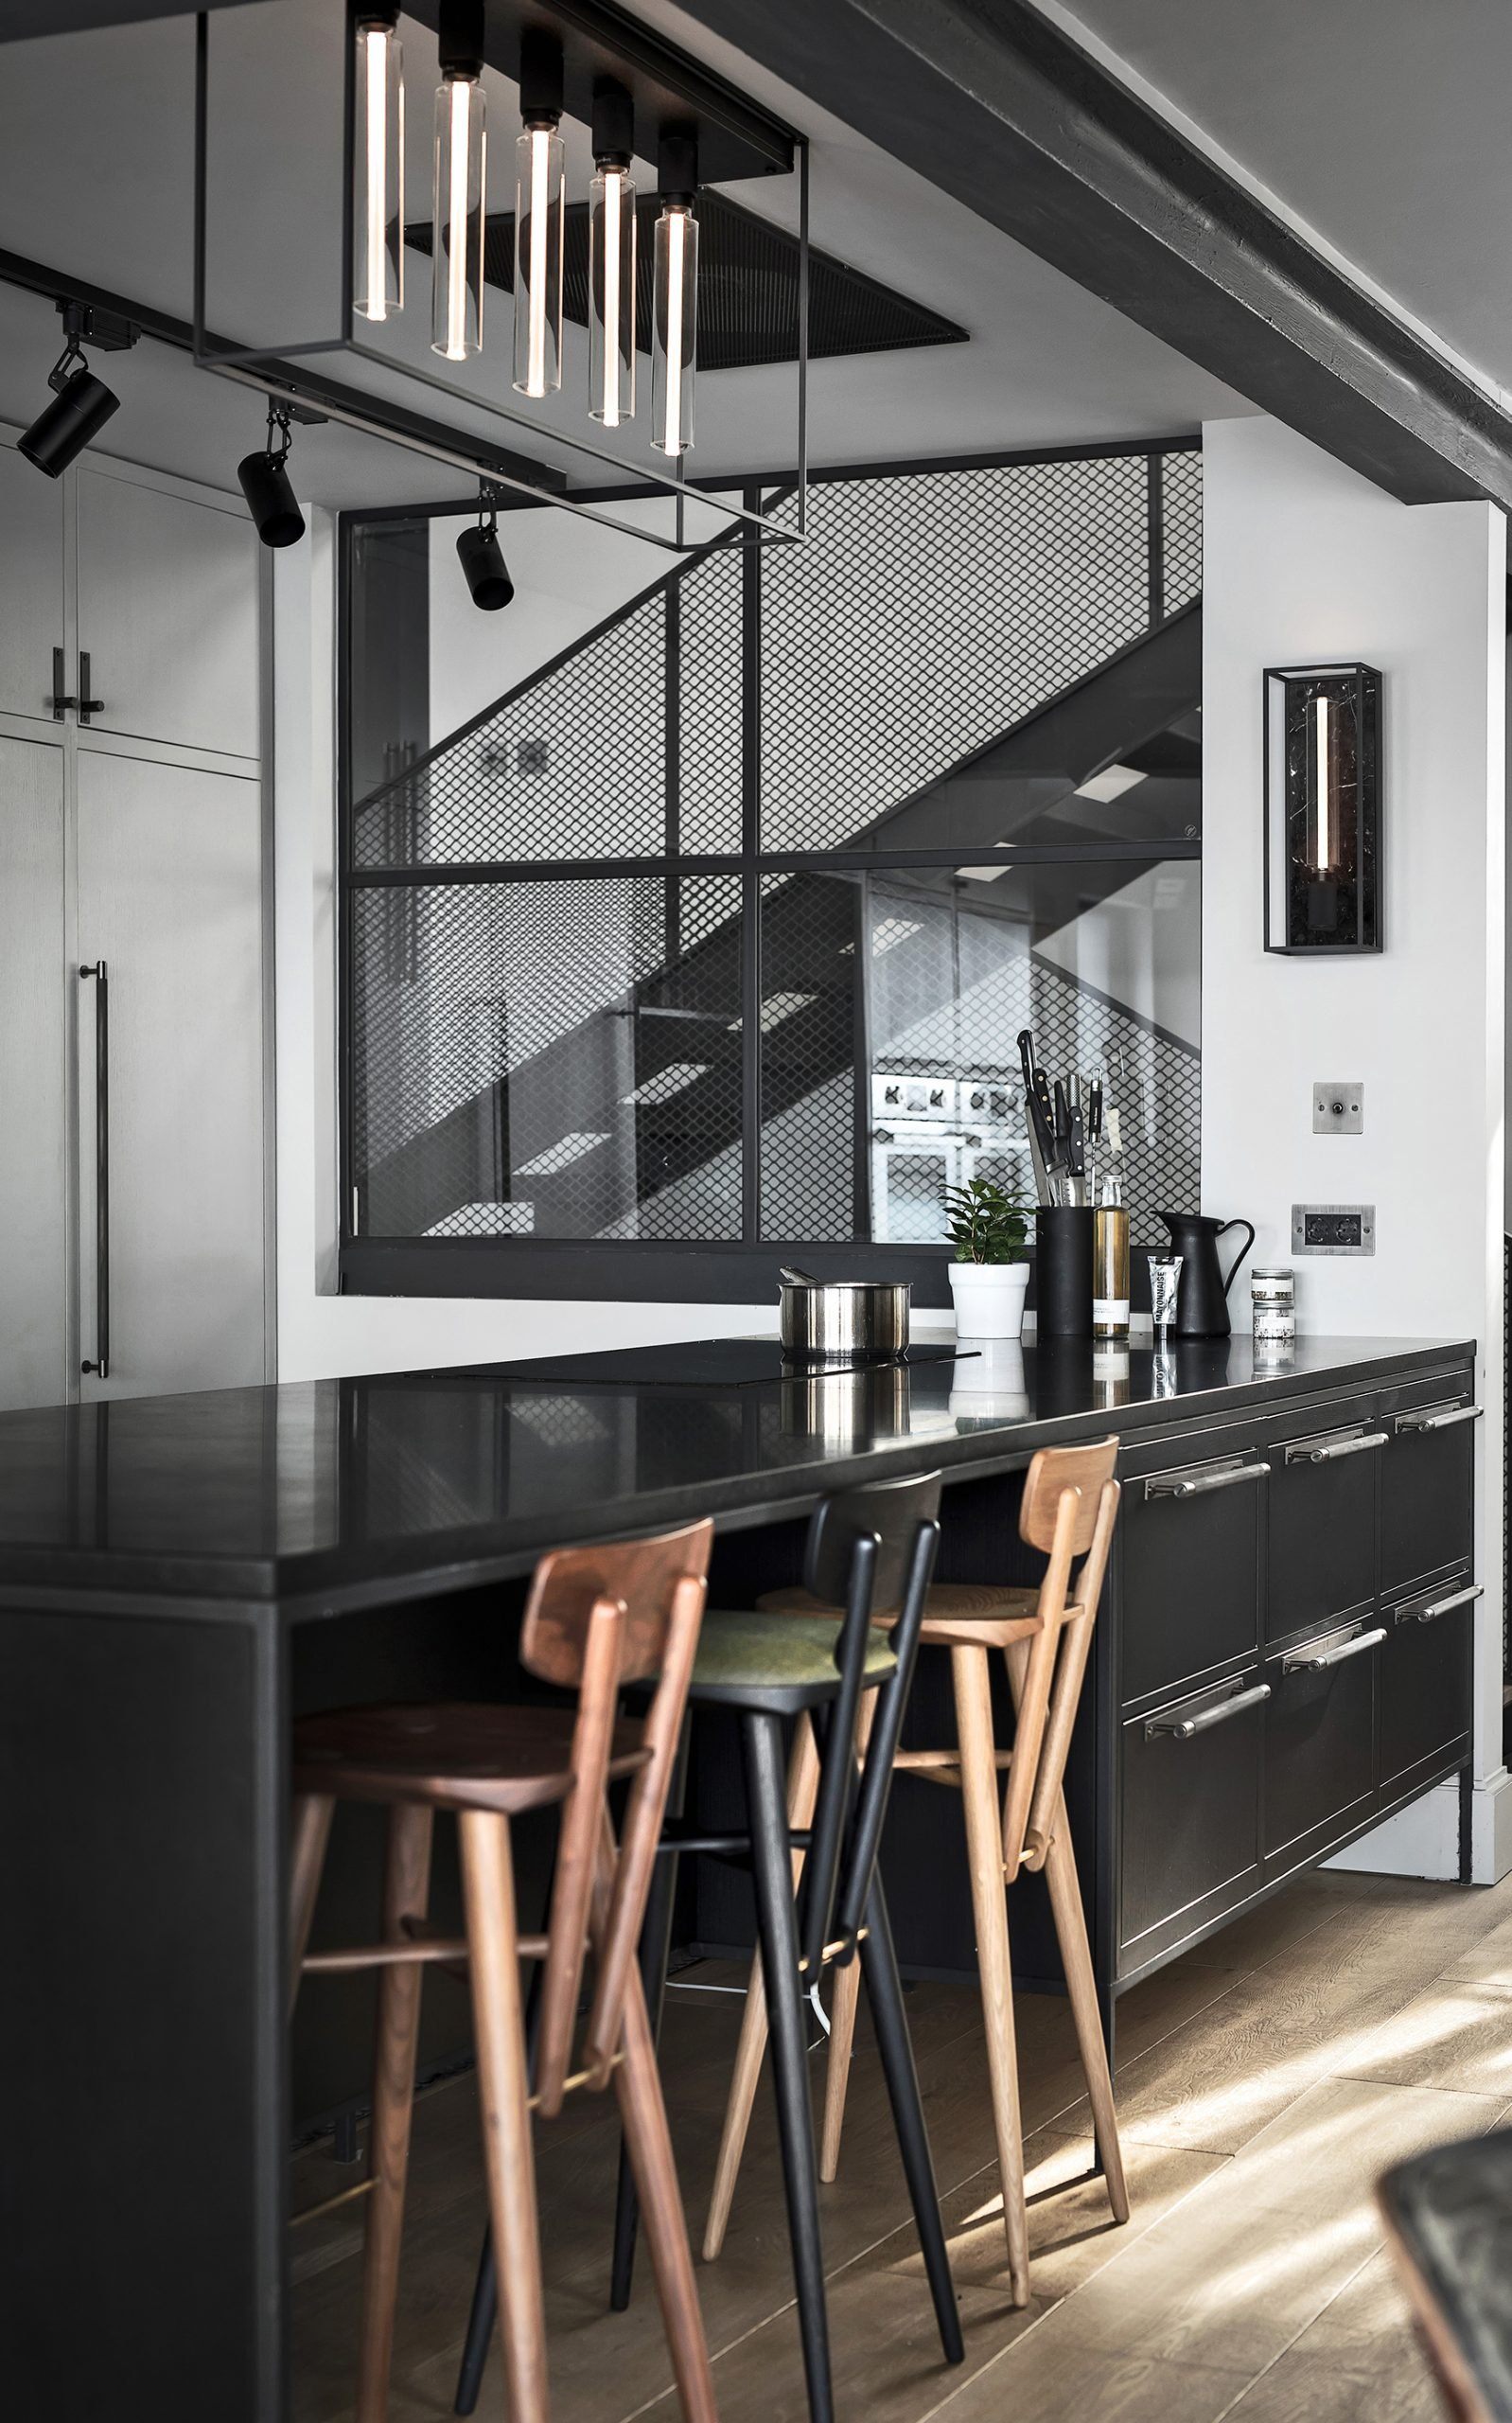 BusterPunch_Caged-5.0_Caged-Wall_Large_White-Marble_Pull-Bar_Smoked-Bronze_Kitchen